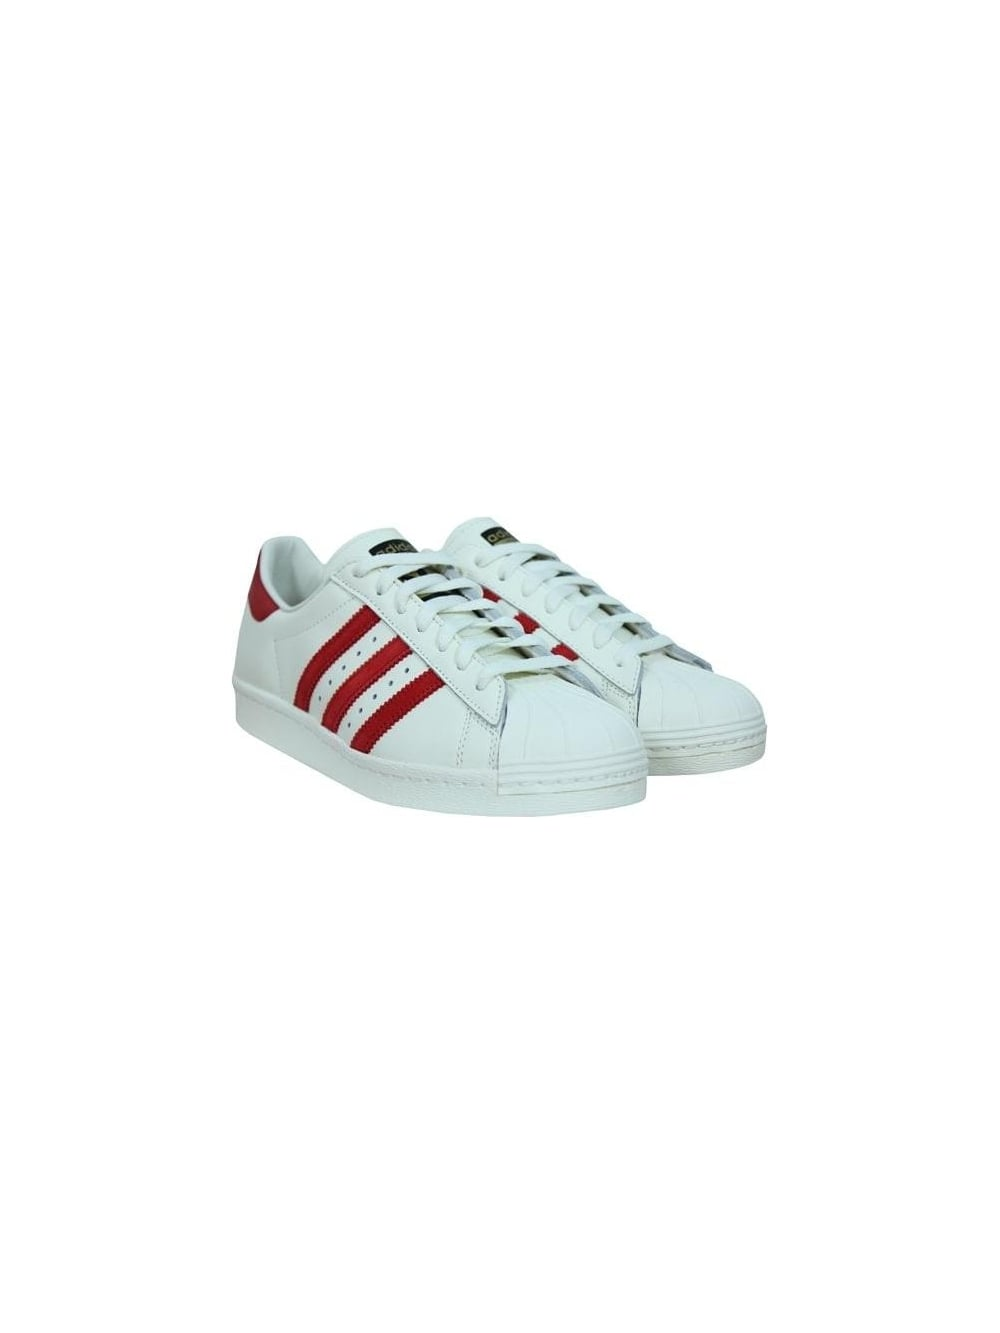 ce2d4c4a7998 Adidas Superstar 80 s DLX in White Scarlett - Northern Threads